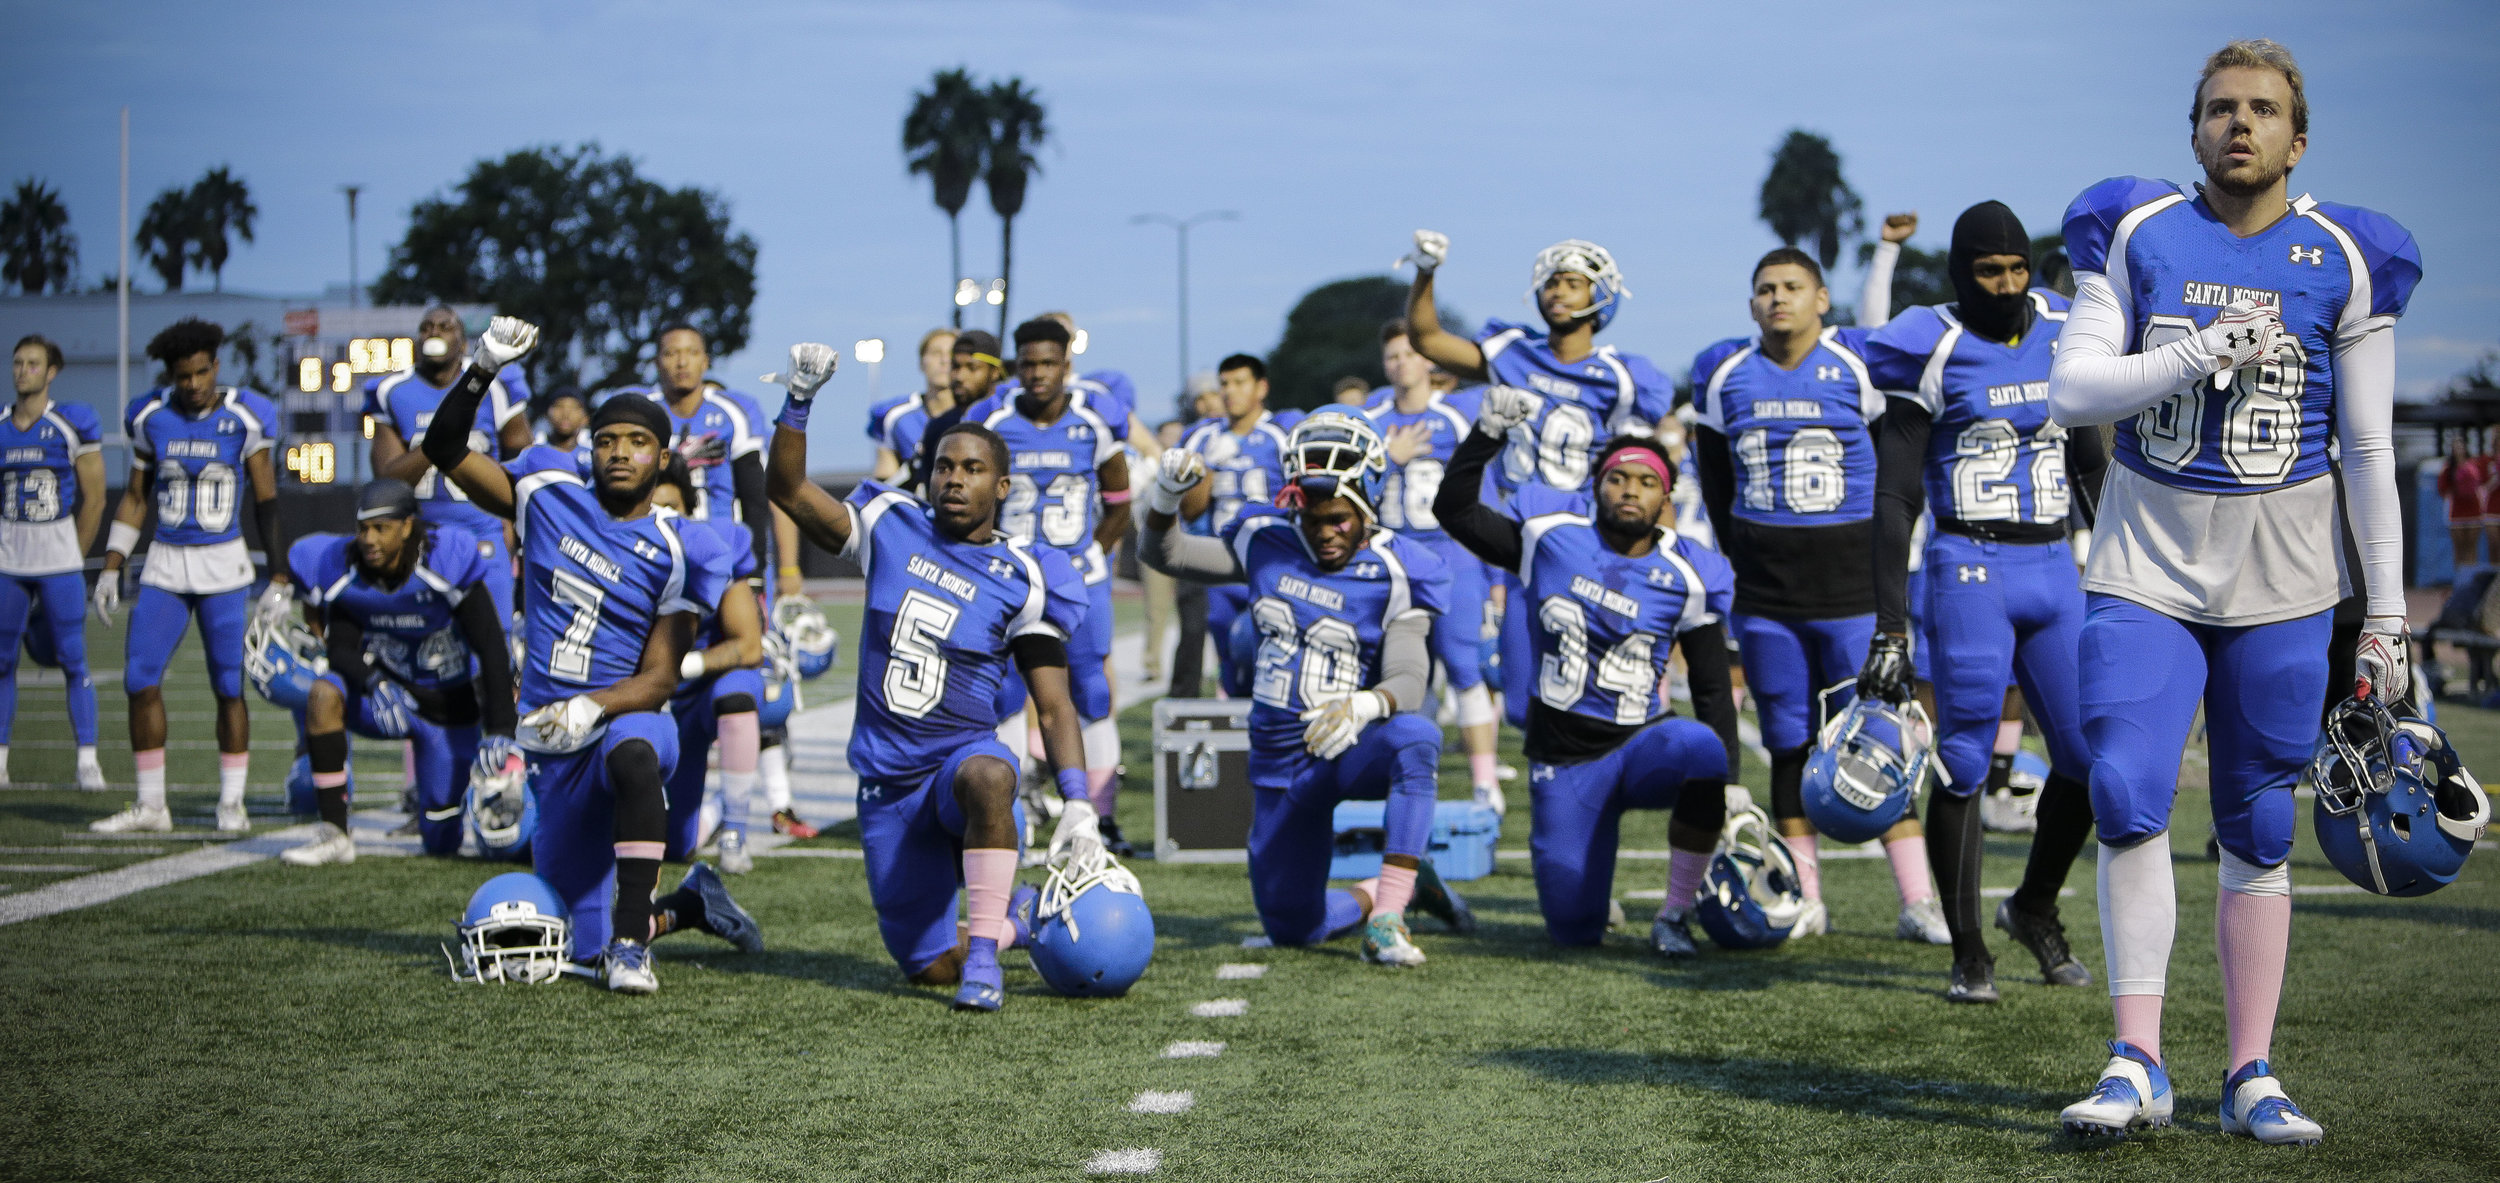 Teamates on The Santa Monica College Corsair mens football team continue to kneel in recognition for #BlackLivesMatter during the National Anthem before the teams Homecoming game. The Corsairs football team would loose at home 26-14 in Santa Monica , Calif. on October 29nd . (Photo By: Daniel Bowyer/Corsair Staff)